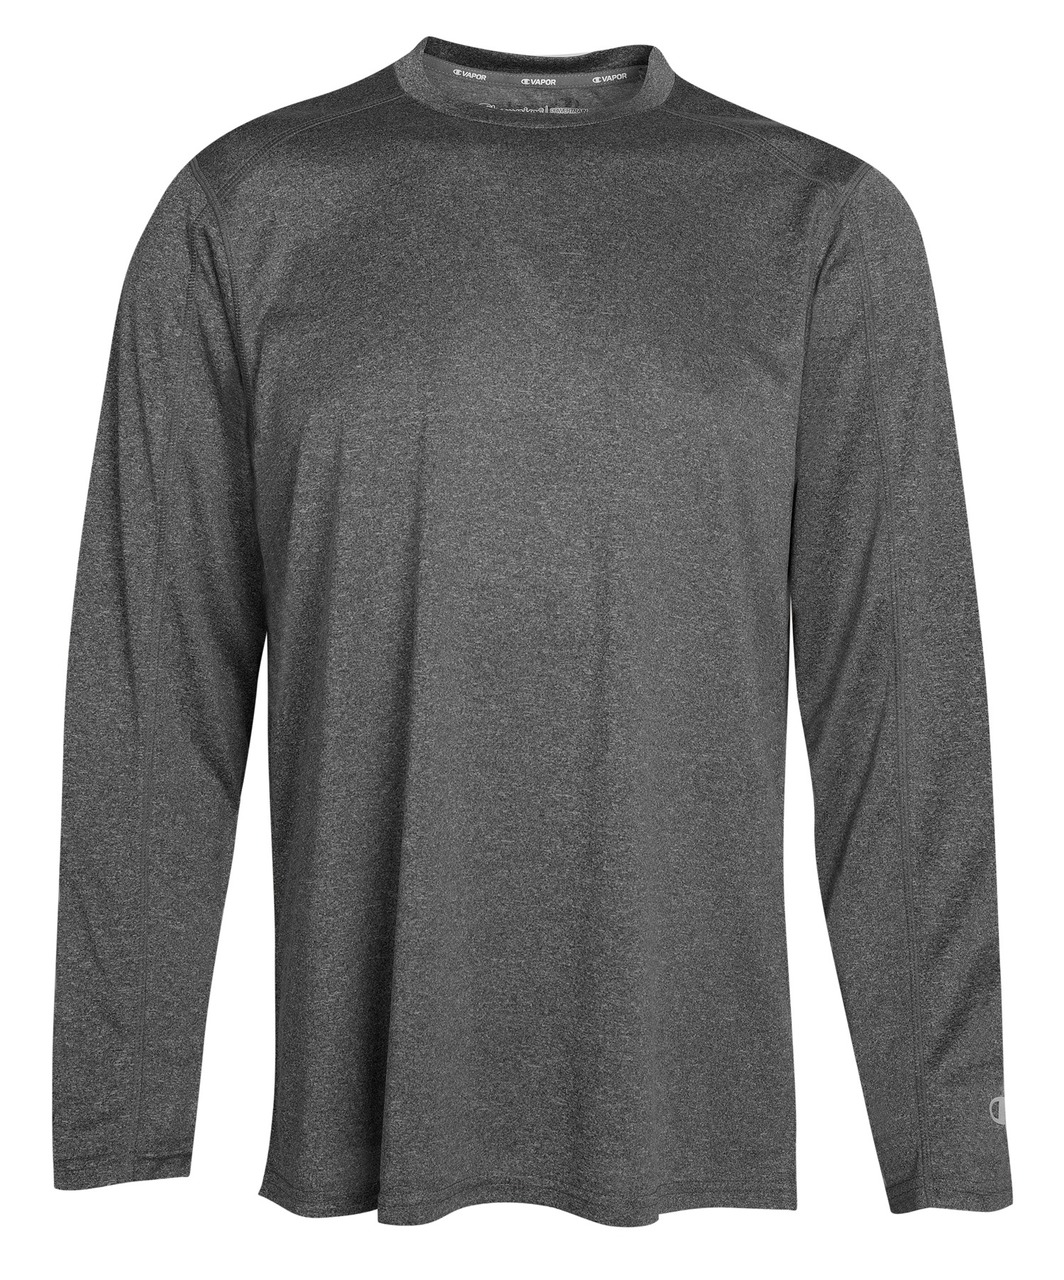 Champion CV26 Vapor Heathered Performance Long Sleeve | Athleticwear.ca